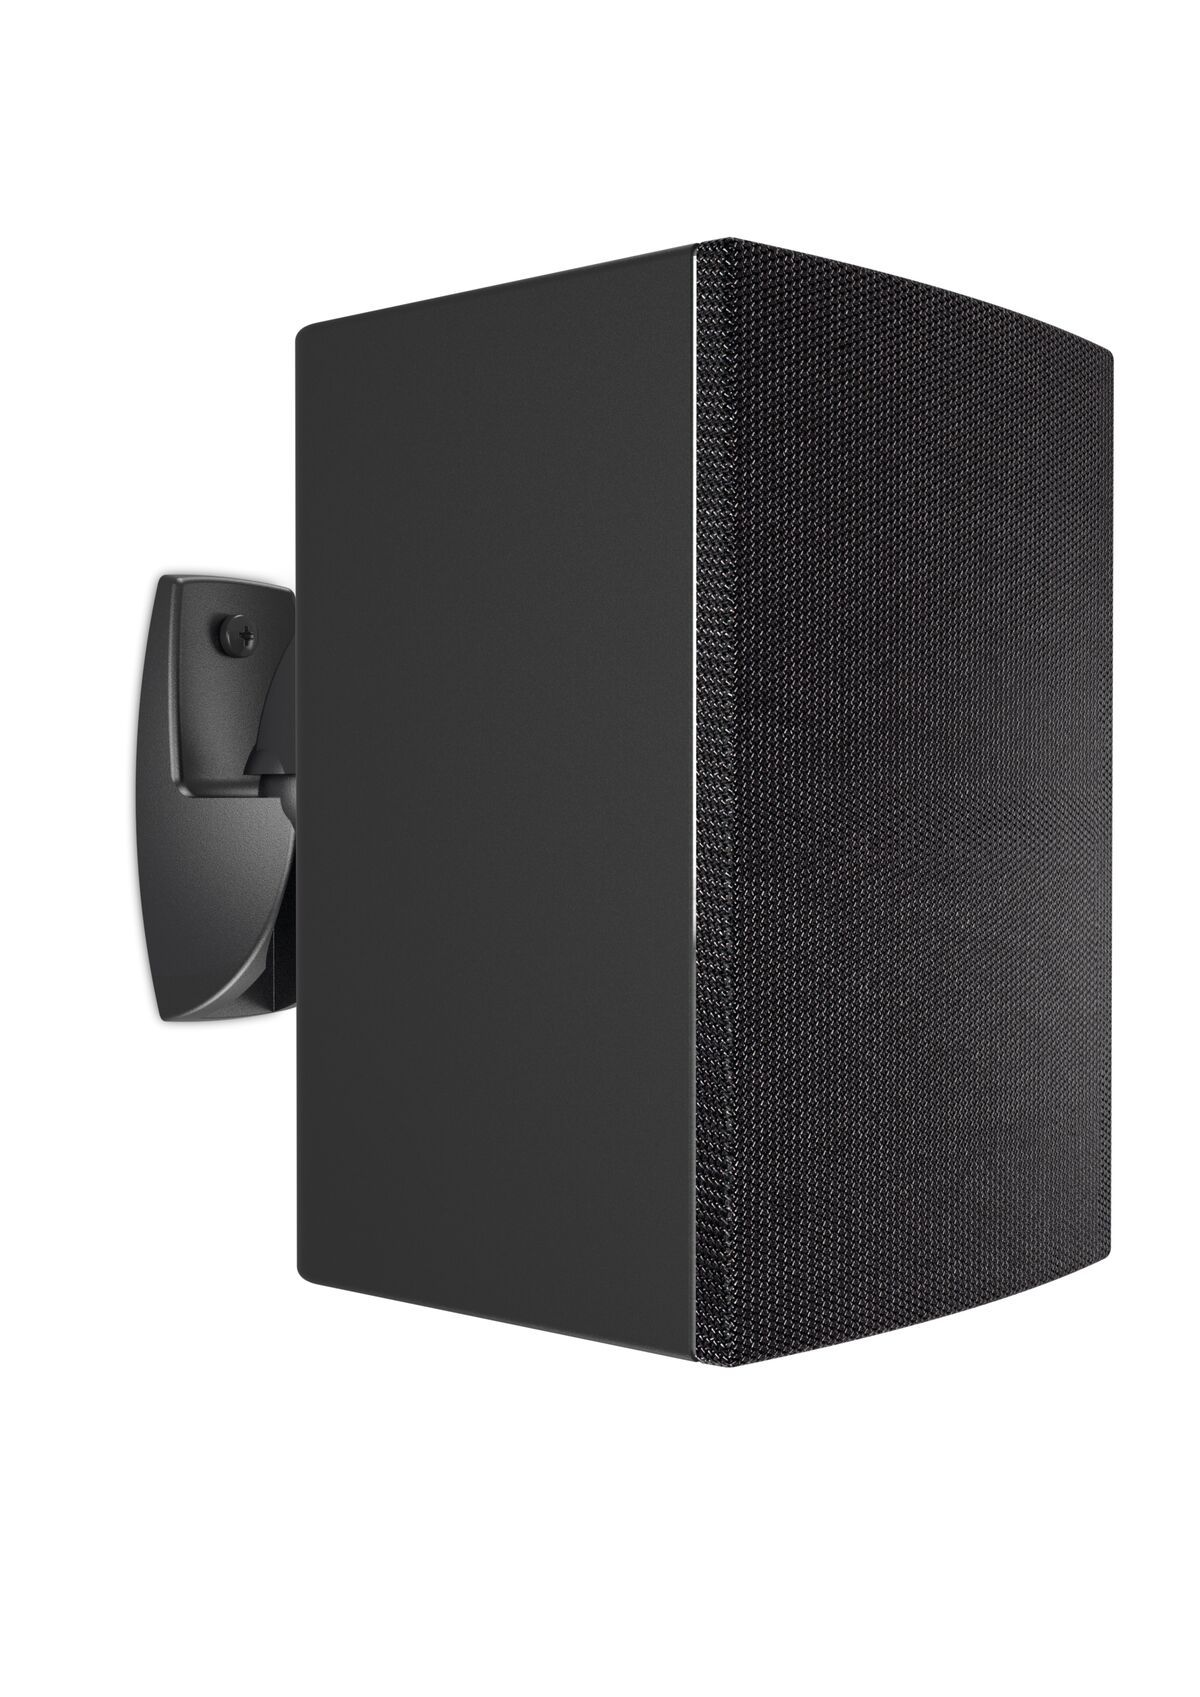 Vogel's VLB 500 Speaker Wall Mount (2x